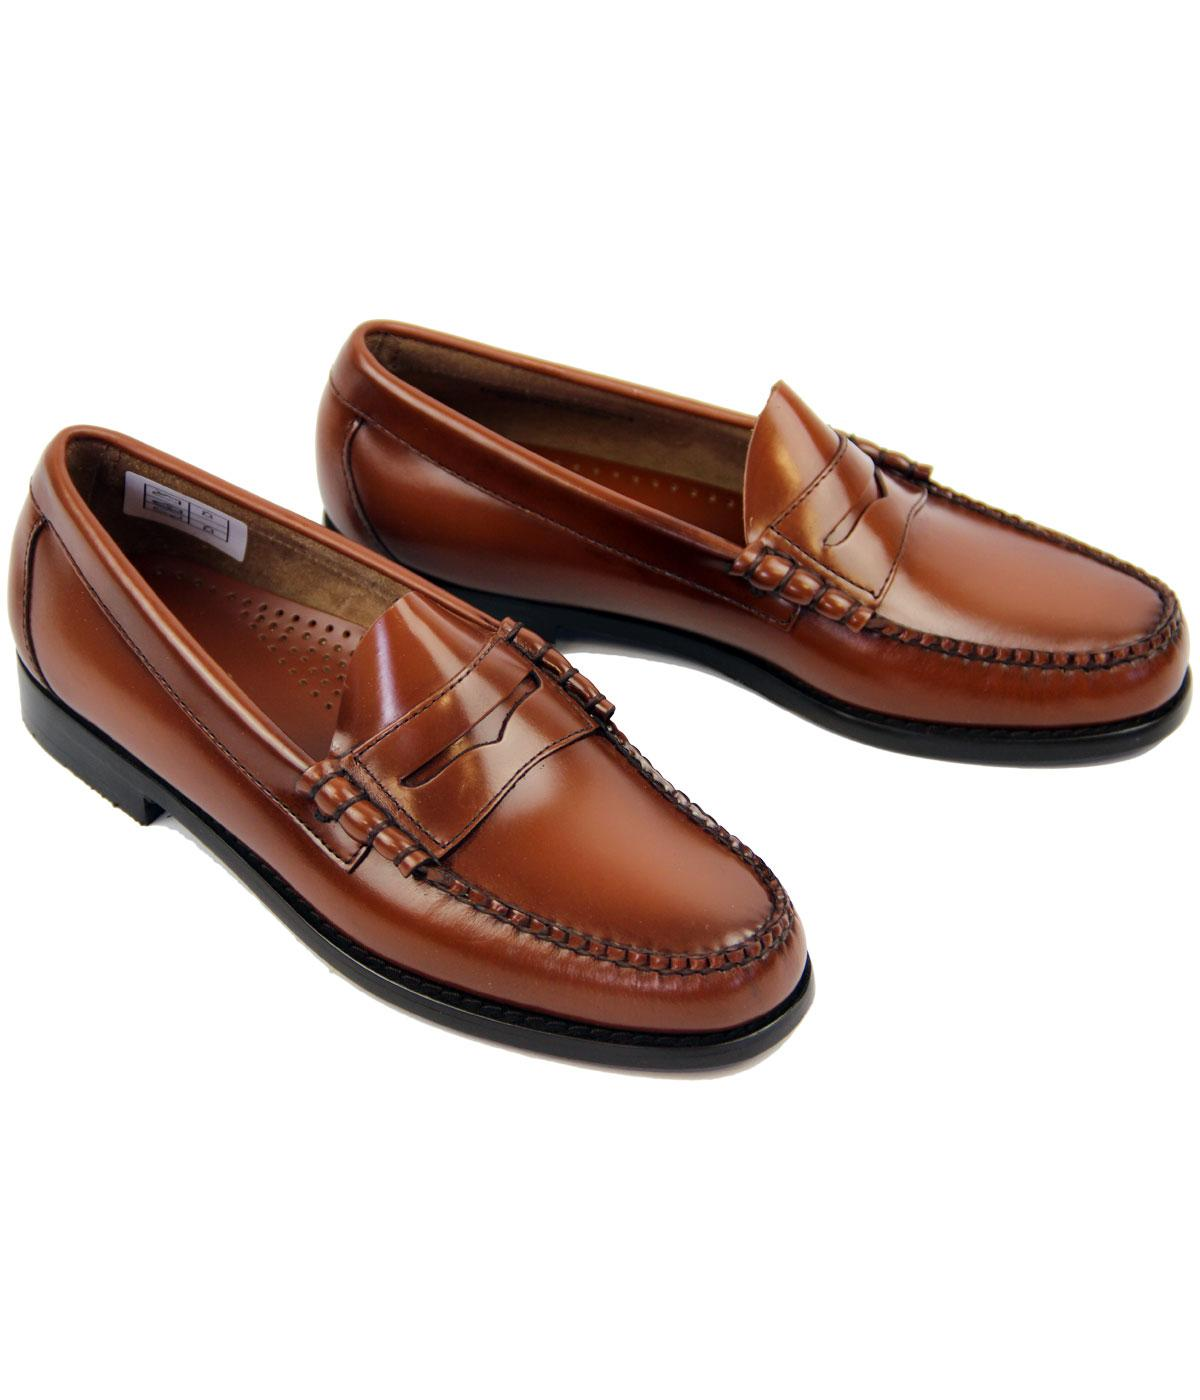 BASS WEEJUNS Larson Retro Mod Penny Loafer Shoes in Brown ...